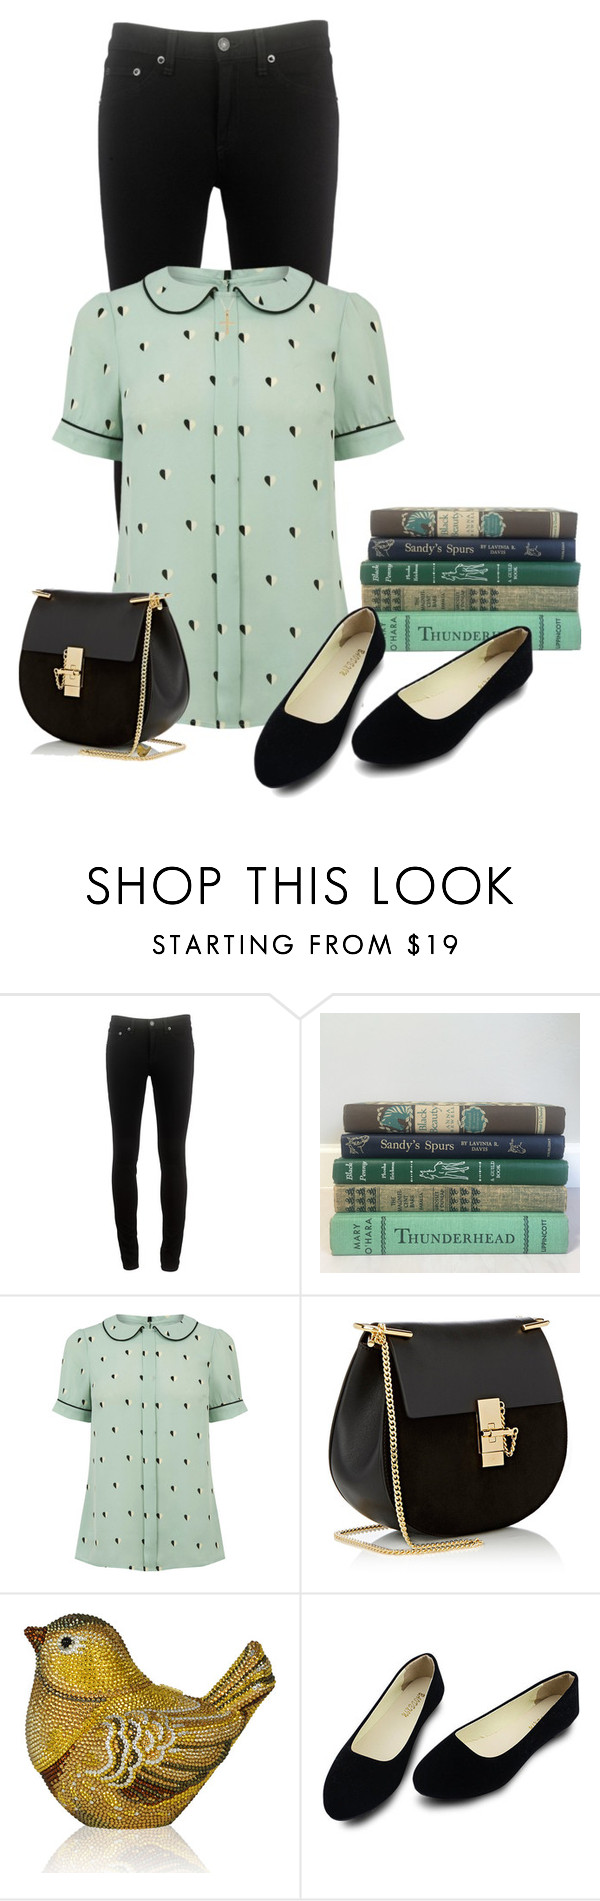 """Book shopping afternoon"" by cardigurl ❤ liked on Polyvore featuring rag & bone, Chloé and Judith Leiber"